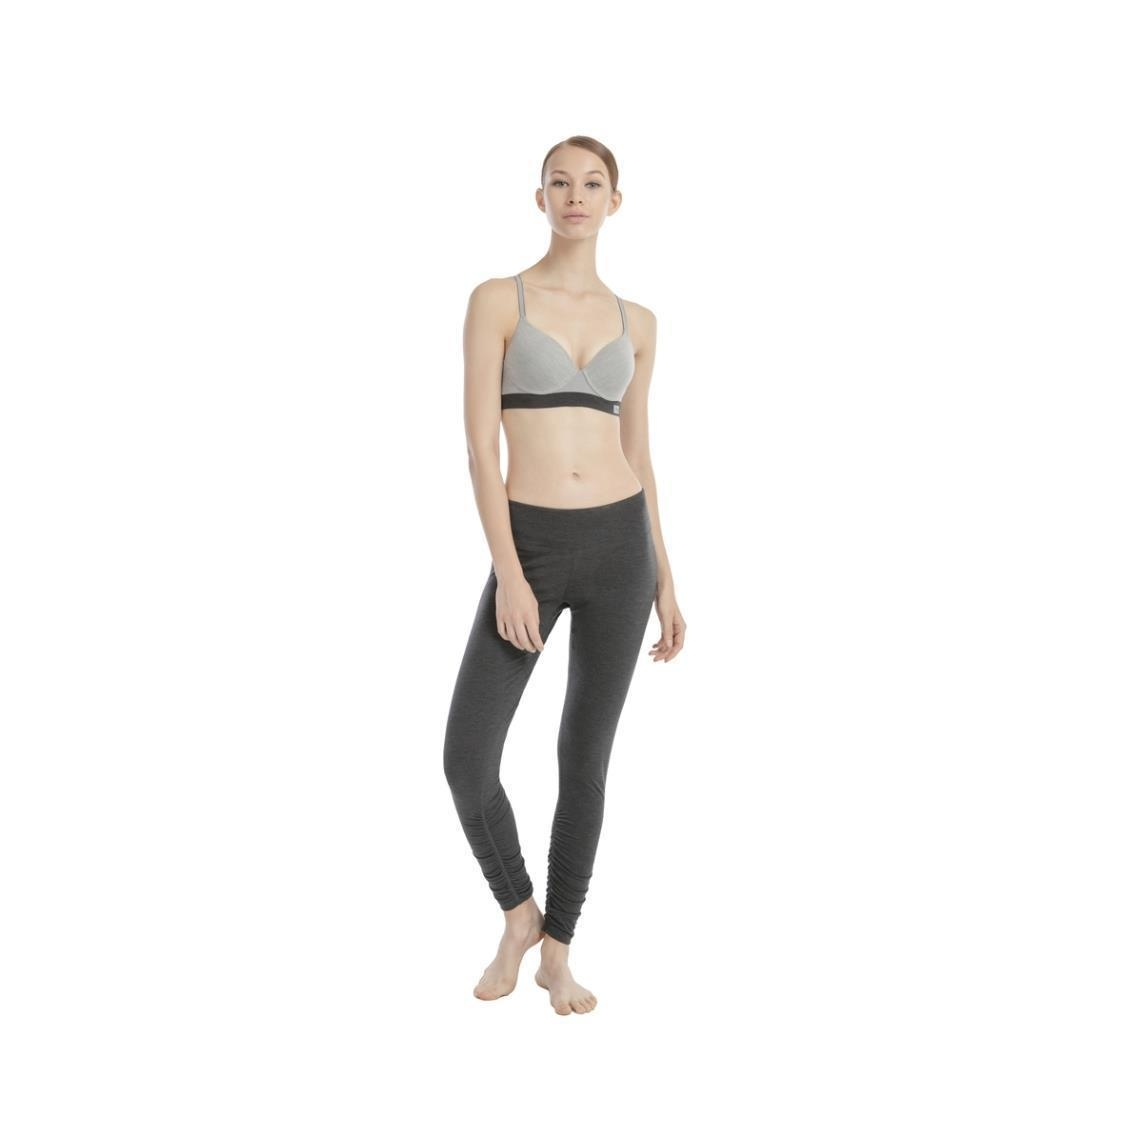 mOve FLOW Wired Padded Bra Grey Combination